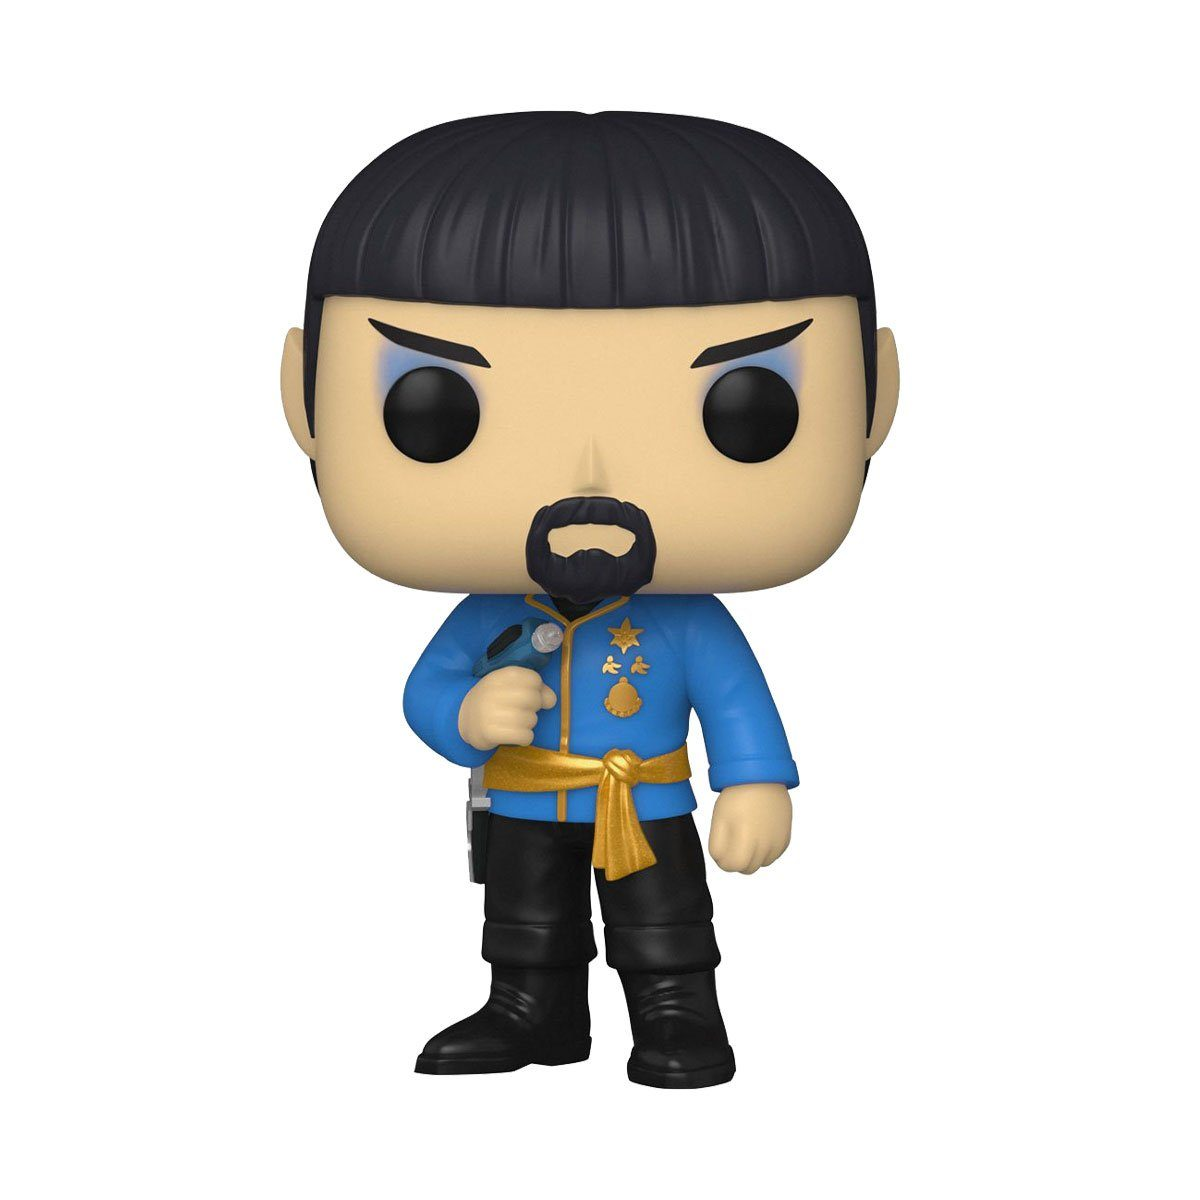 Spock (Mirror Mirror Outfit) Star Trek: The Original Series Funko POP! TV [PRE-ORDER EXPECTED SPRING 2021*] POP! Funko